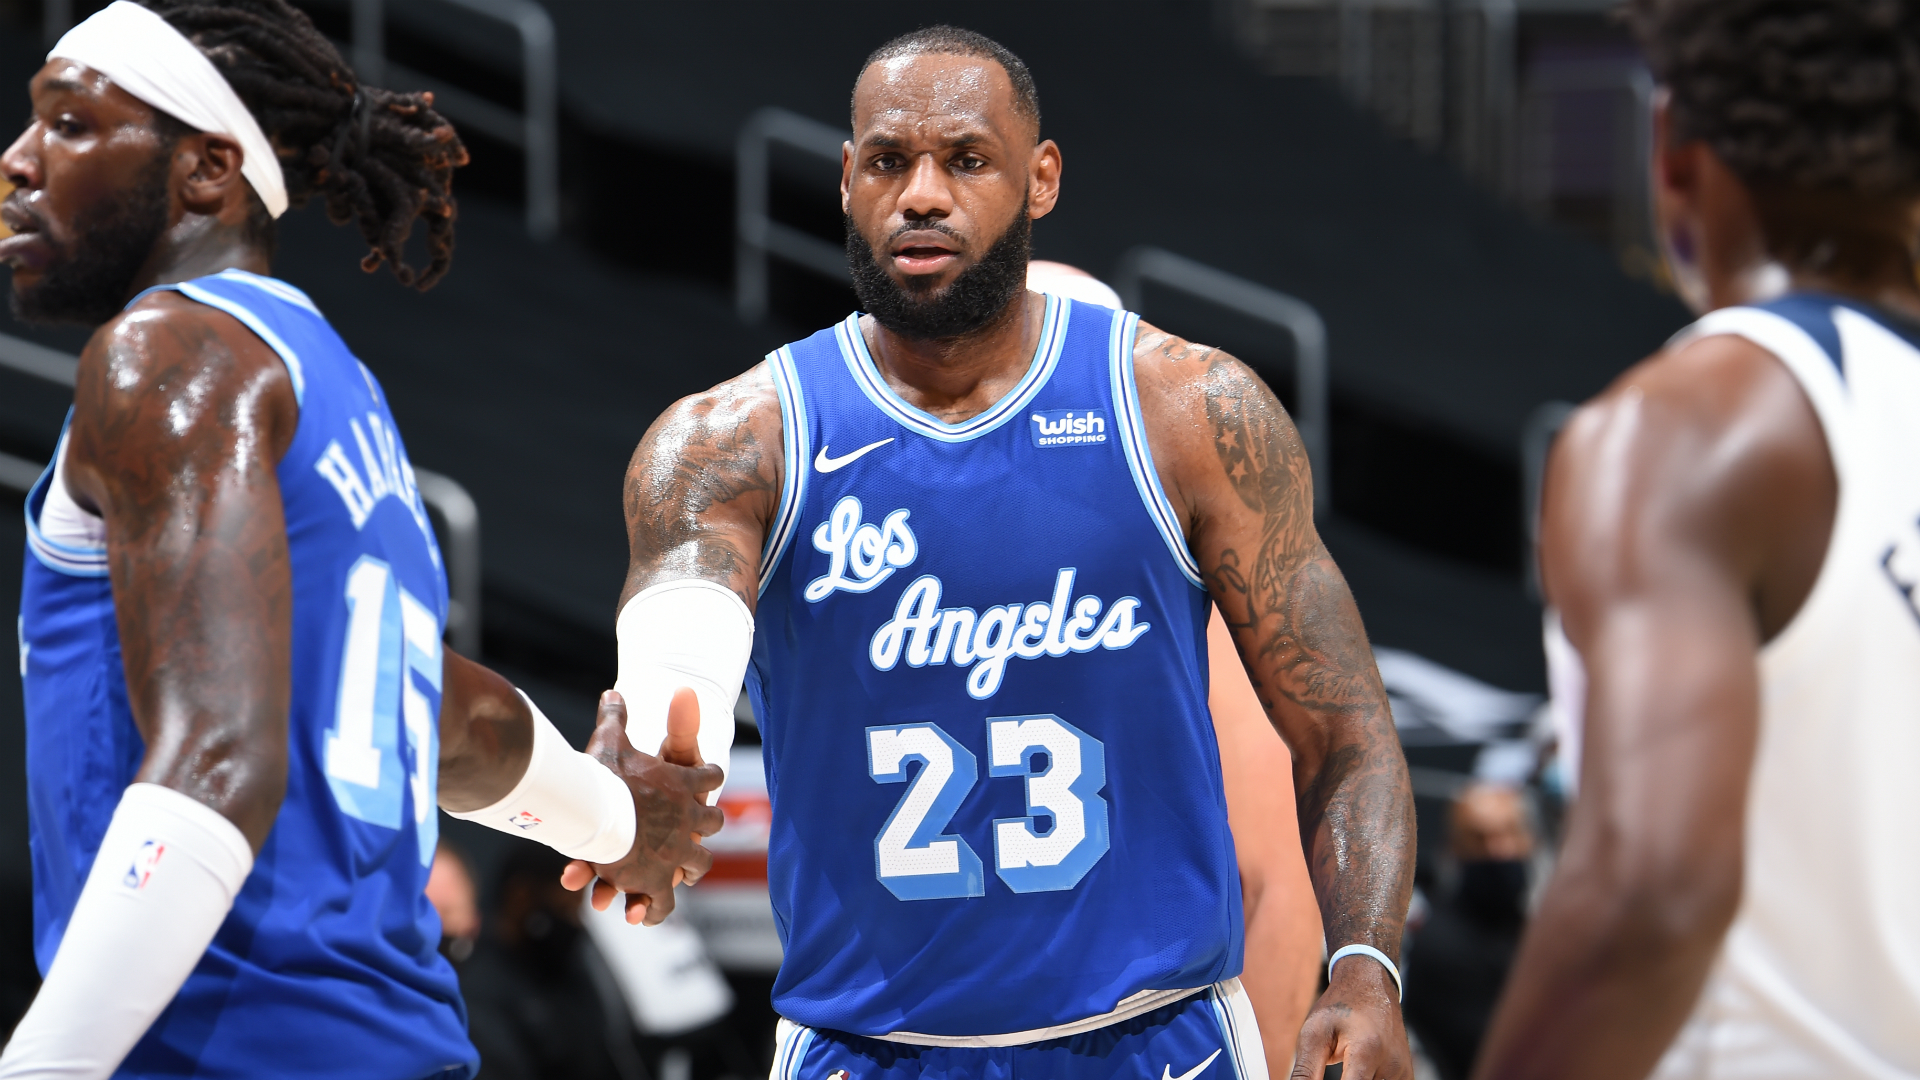 LeBron's Lakers crush Timberwolves, Knicks stun Giannis and Bucks as Mavs humiliate Clippers